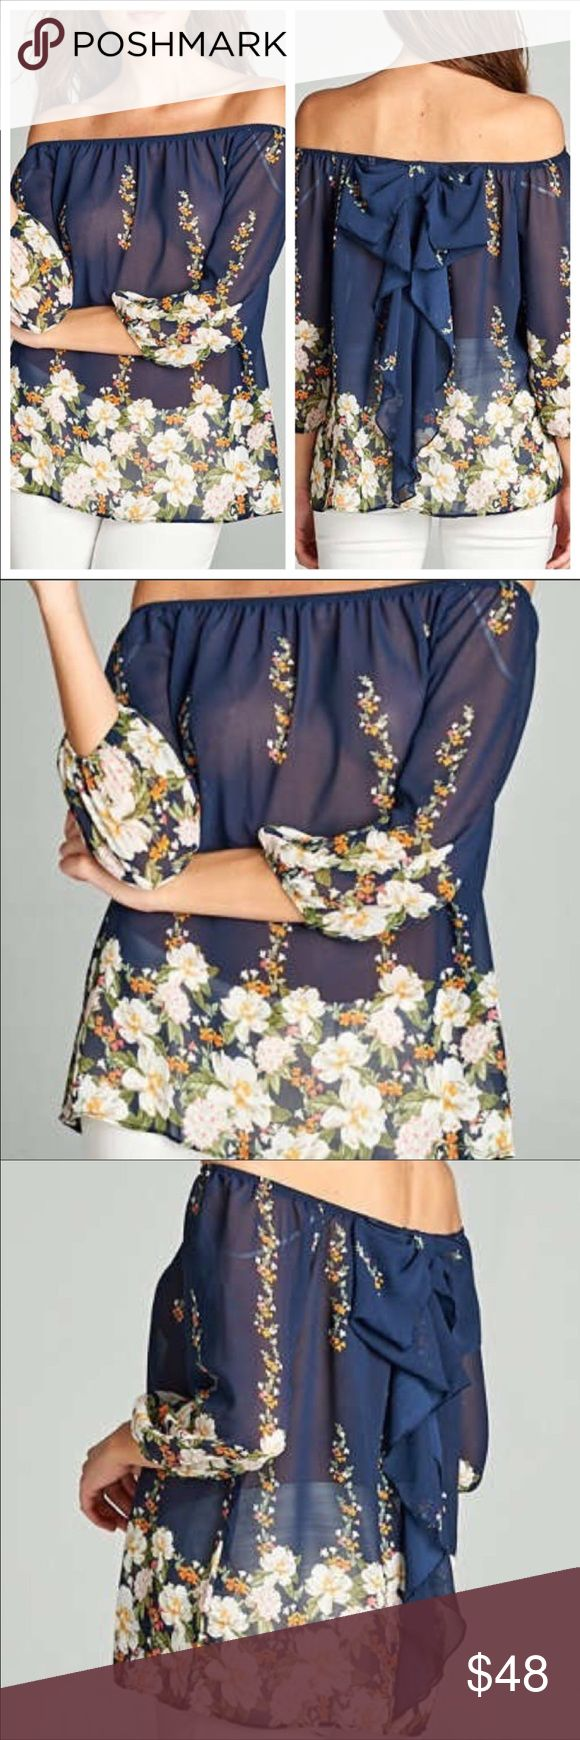 Stunning bow back top navy with florals NWT Stunning bow back top navy with florals NWT retails $100. Brand new for the summer 2017 fashion!  #fashionweek all purchases included one free week luxury fashion designer rental from Lavish Lend as well. Tops Blouses